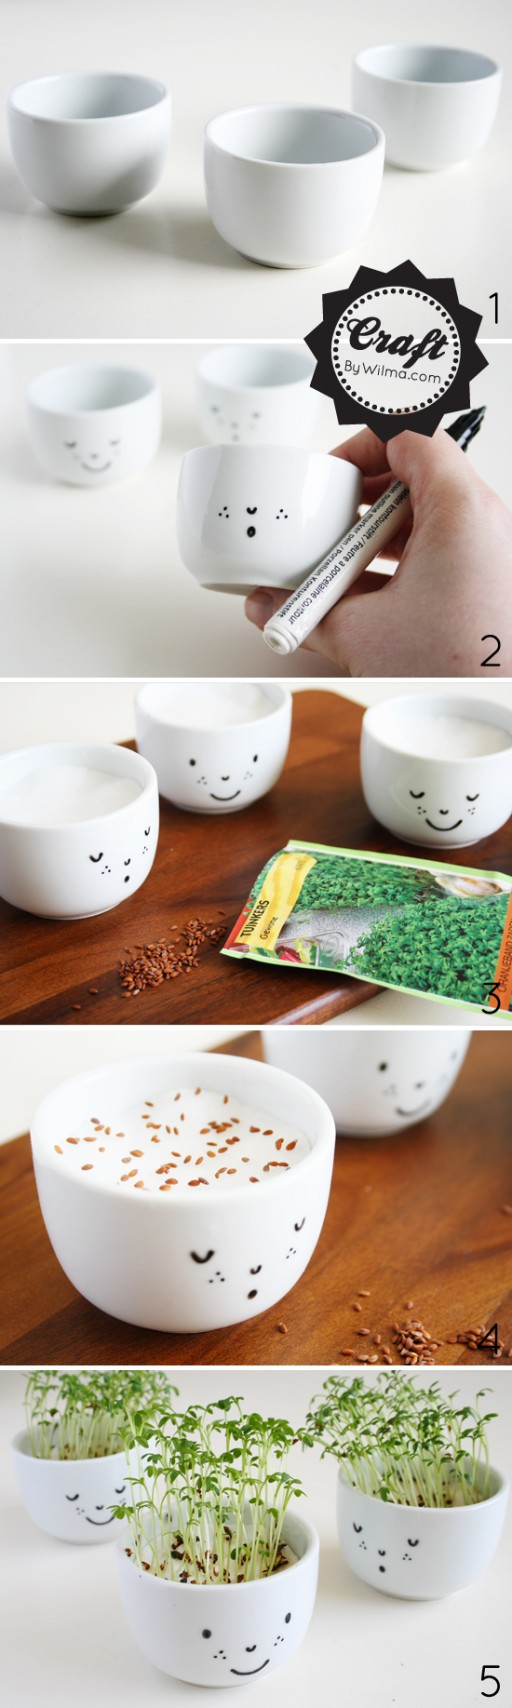 How To Make Cute Cress Cups With A Face 1